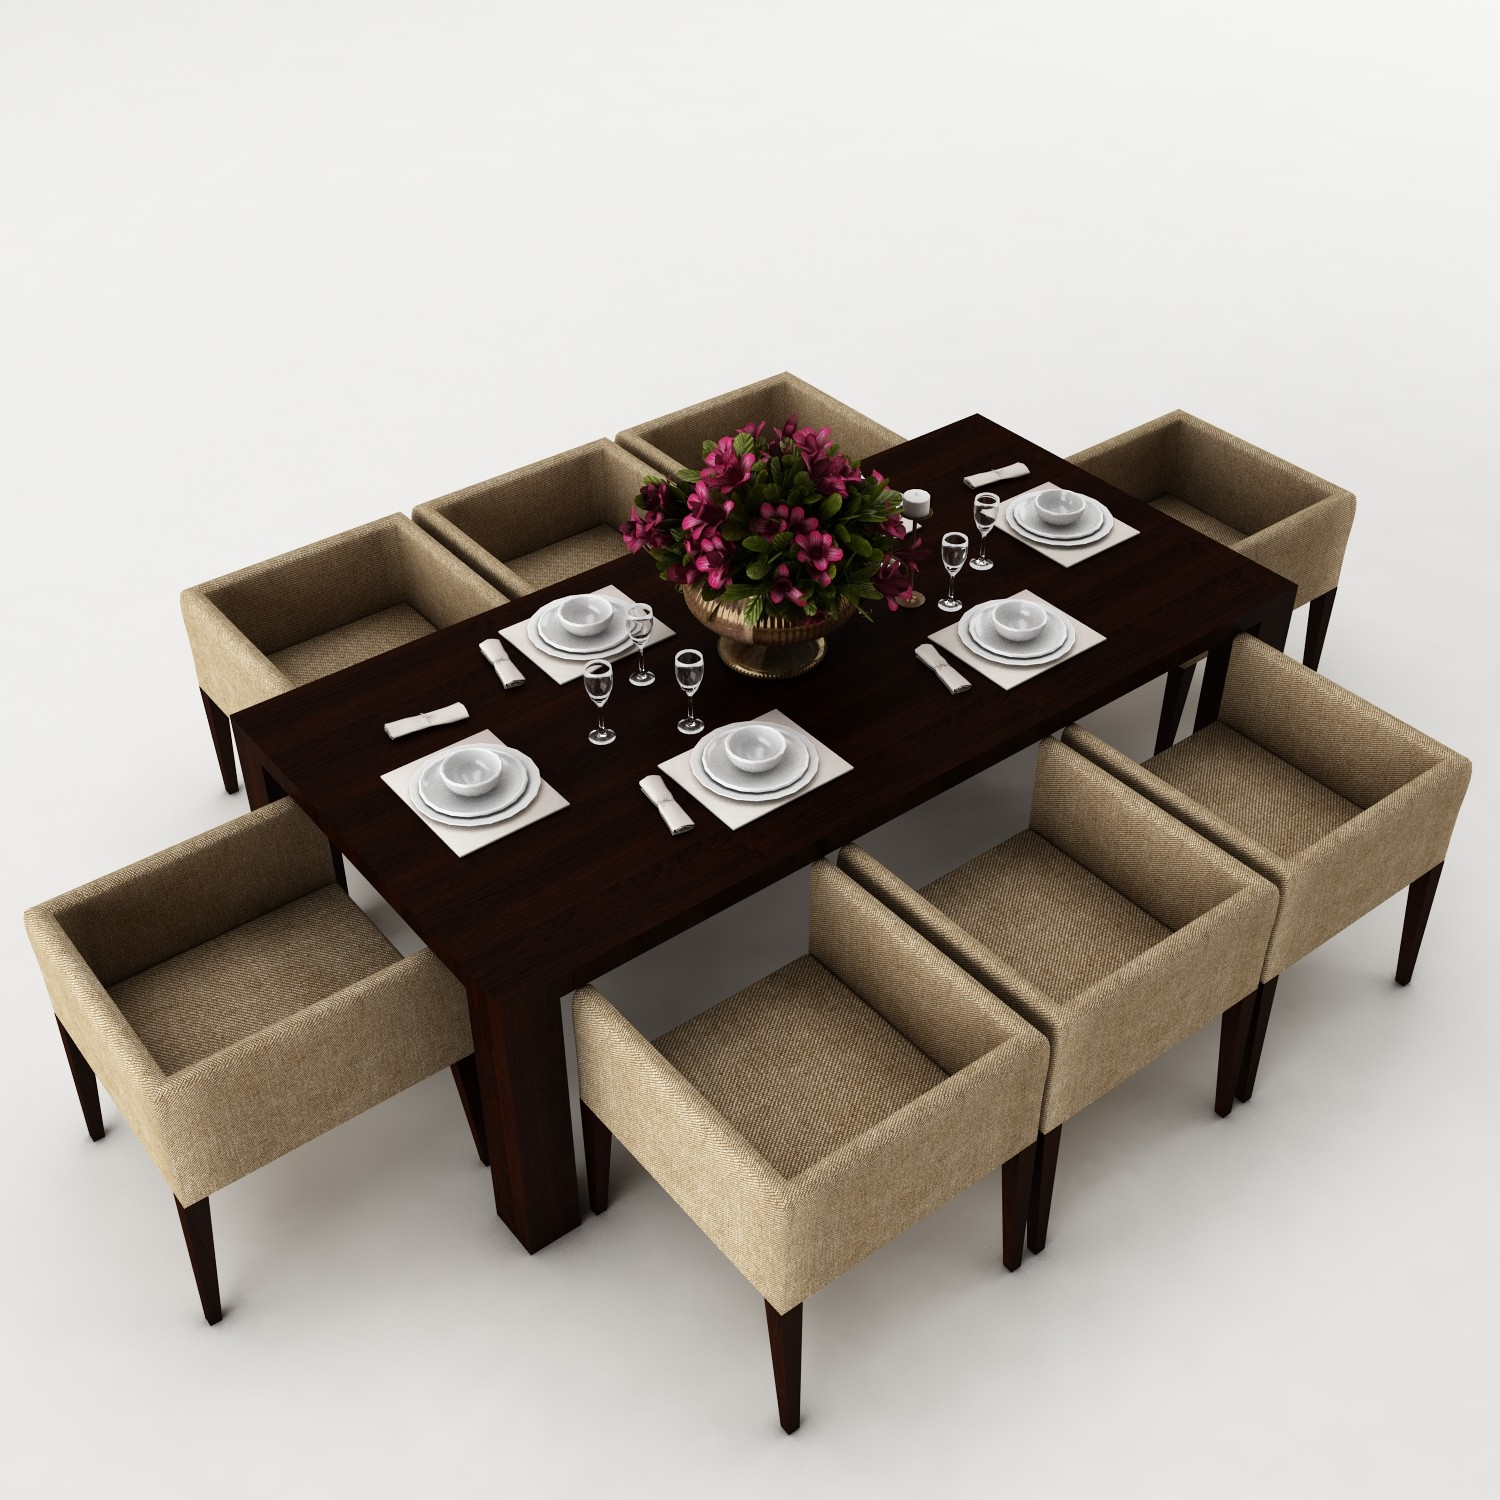 Dining table set 43